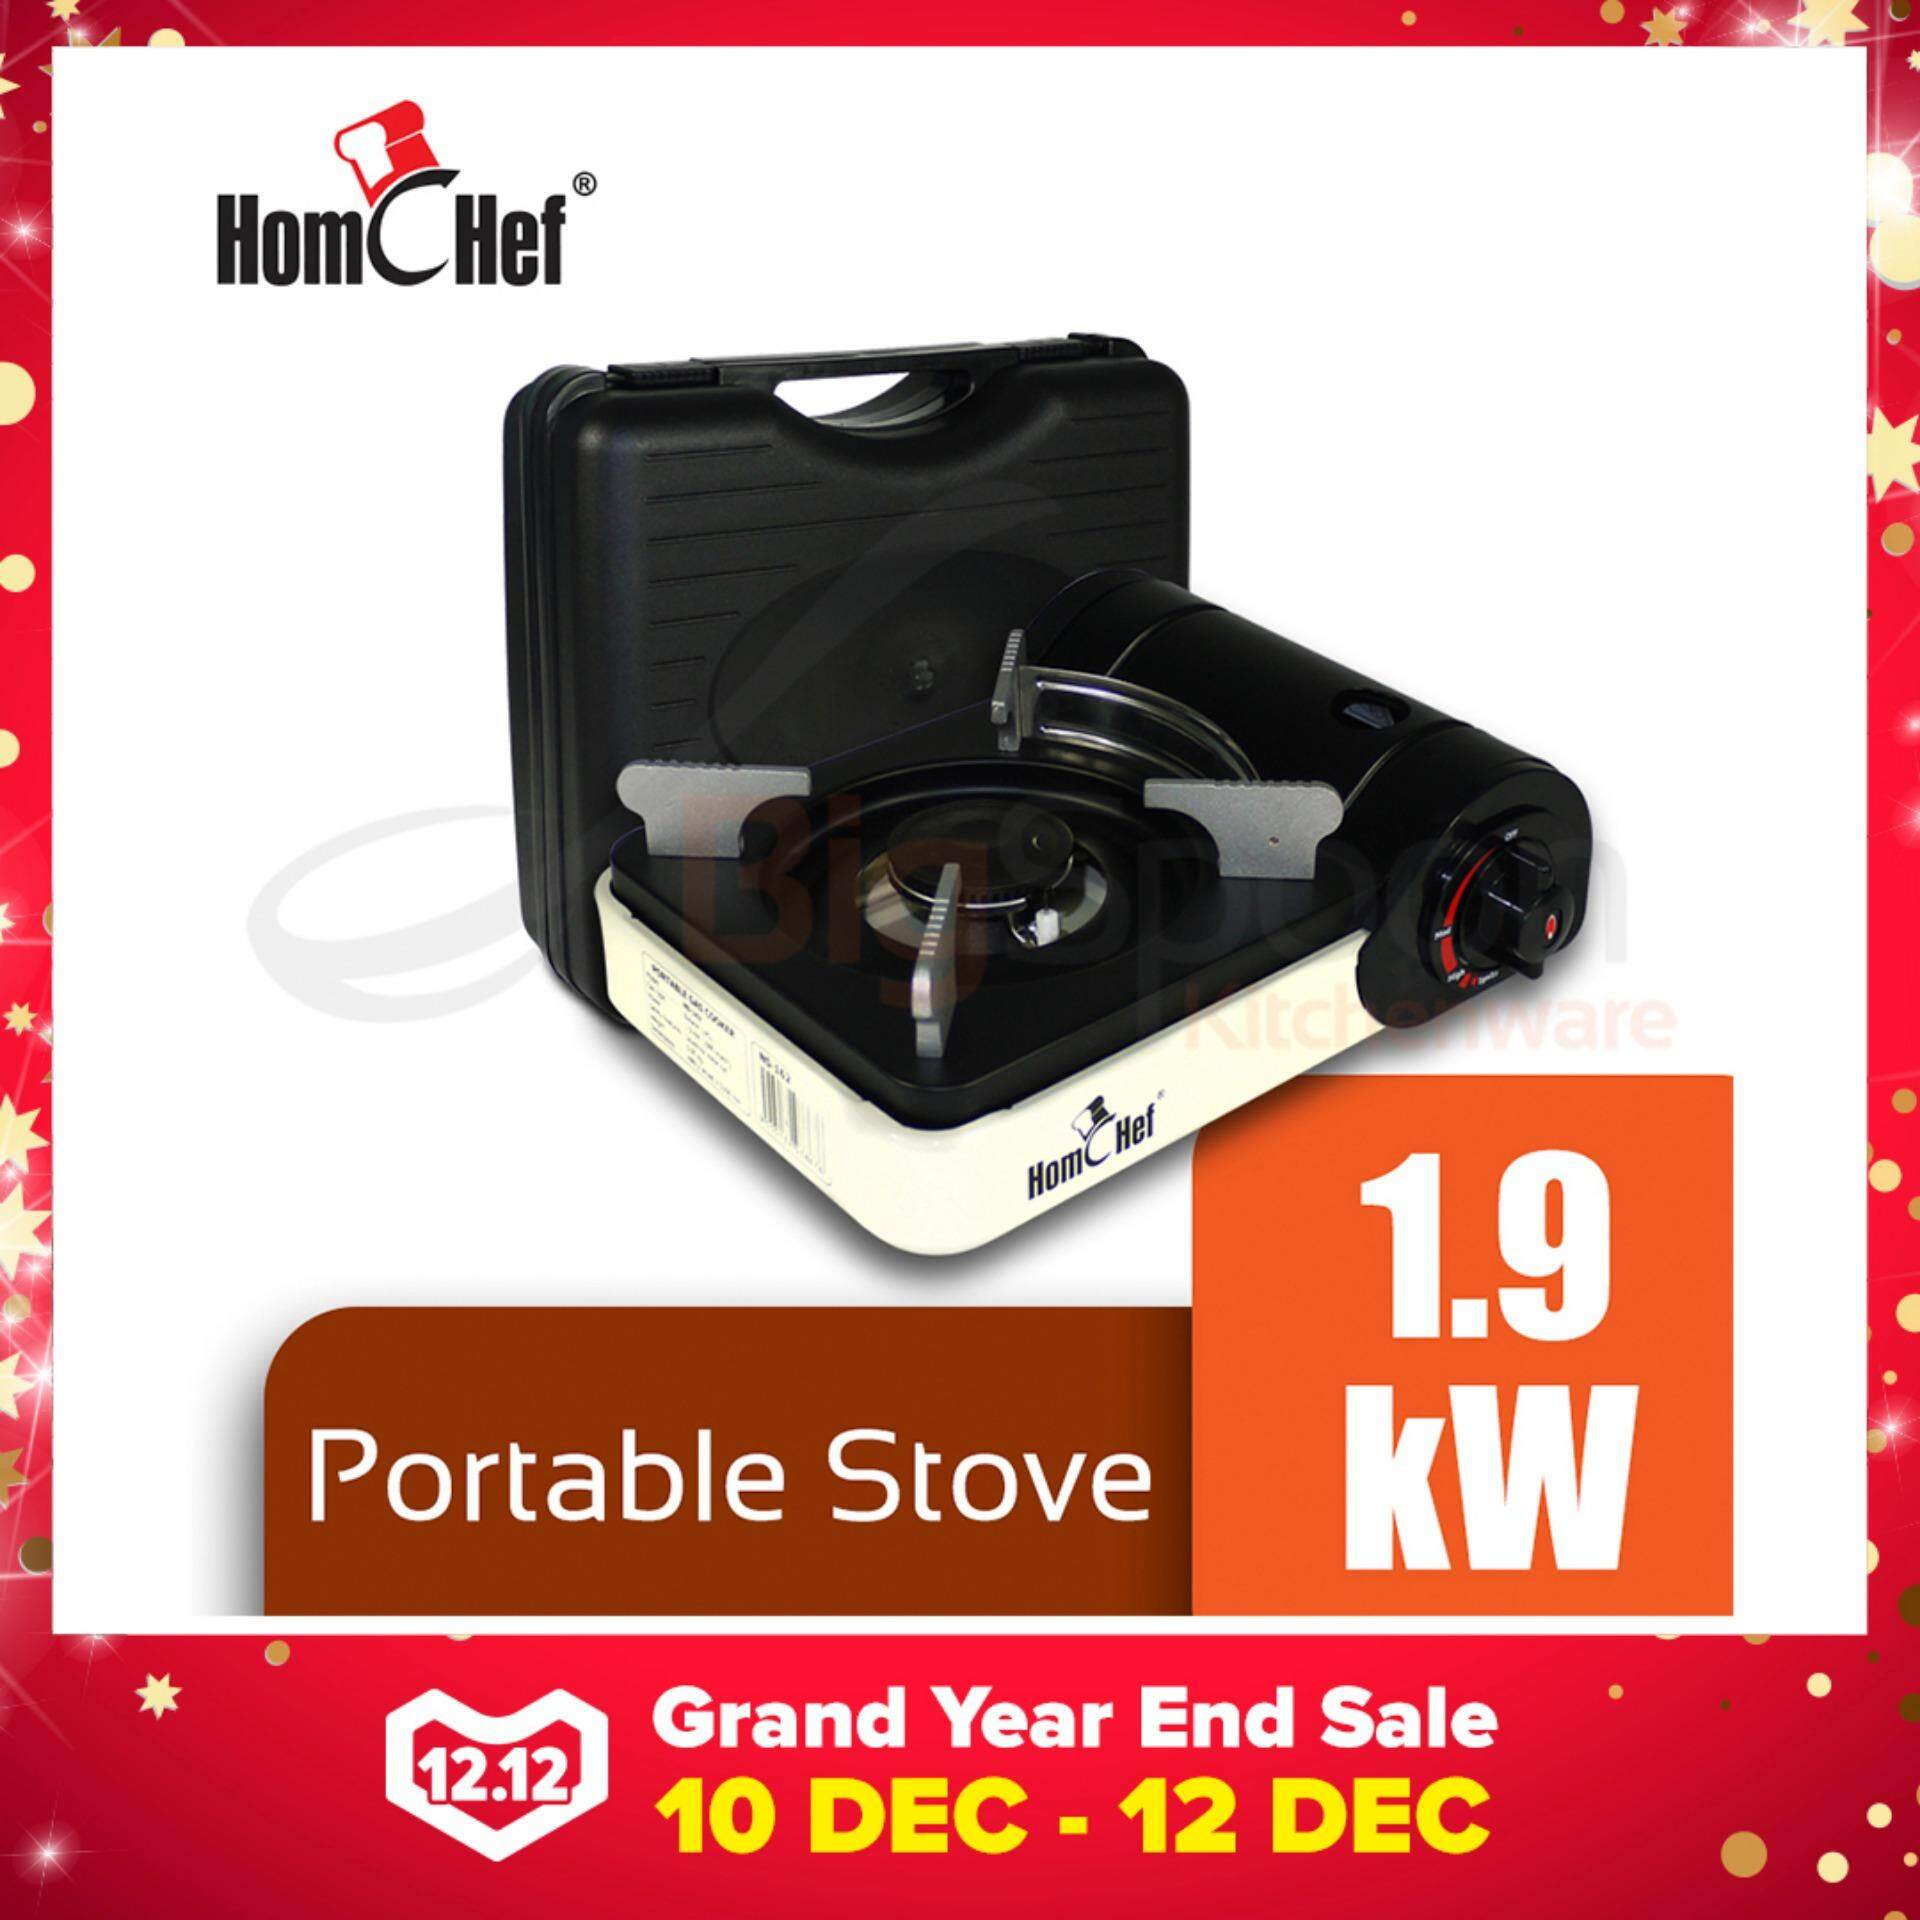 HOMCHEF Premium Outdoor Camping Mini Portable Gas Stove Cooker 1.9kW with Carrying Case NS-162 - 246 x 200 x 89 mm